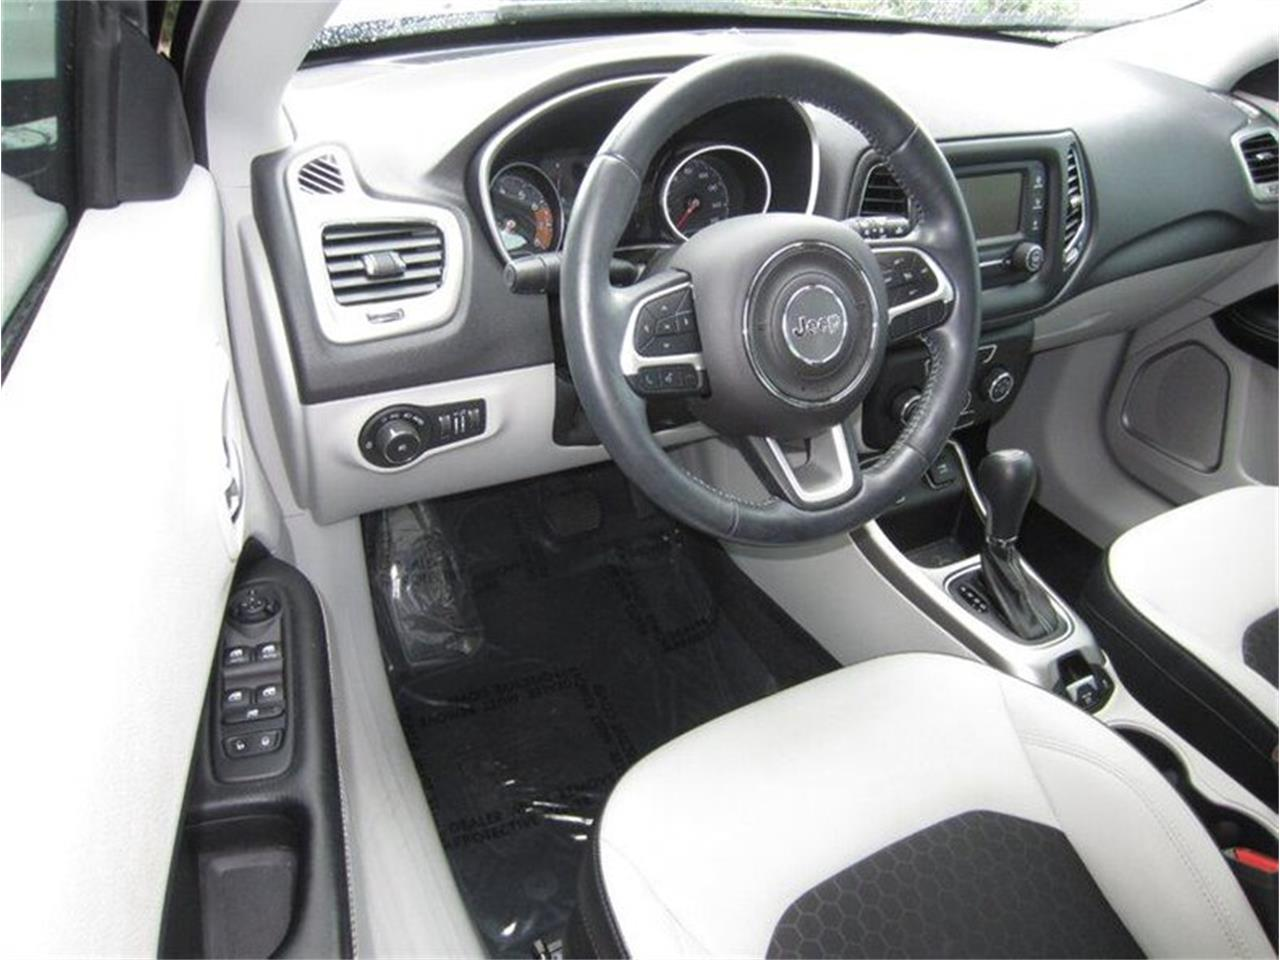 2018 Jeep Compass (CC-1421799) for sale in Punta Gorda, Florida